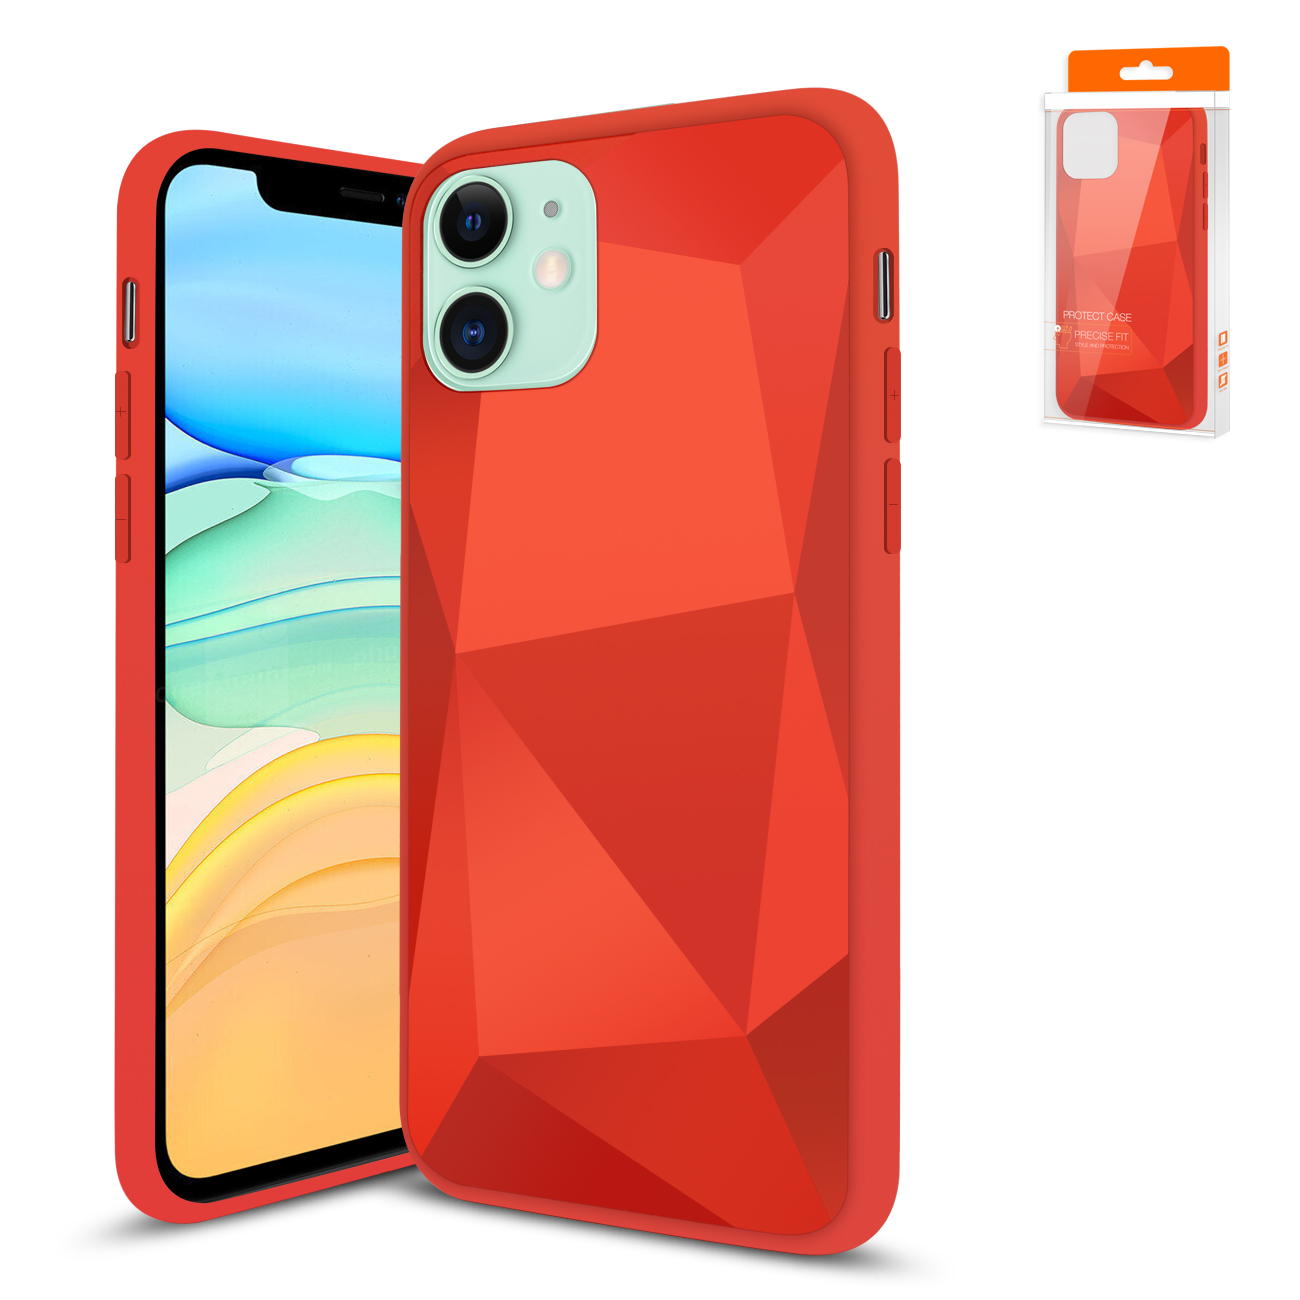 Apple iPhone 11 Apple Diamond Cases In Red